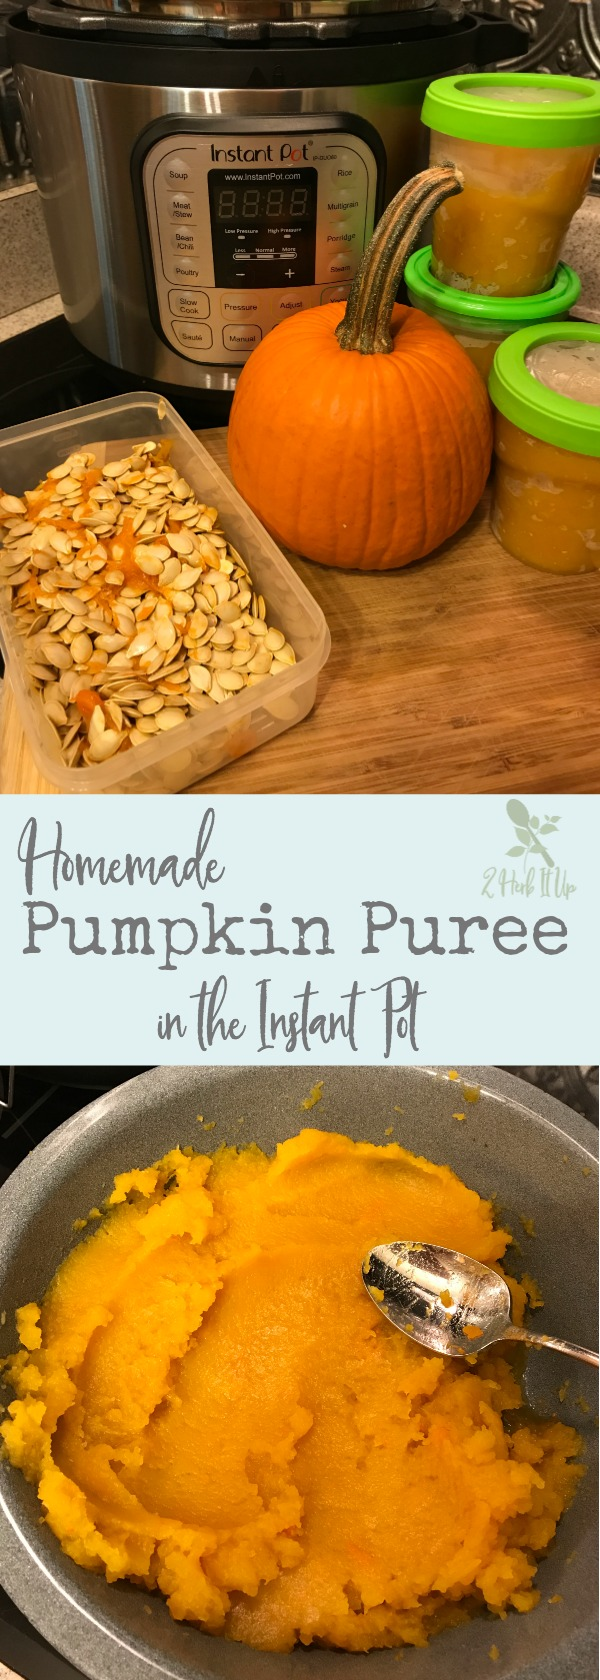 Homemade pumpkin puree in the Instant Pot.  The Instant Pot makes homemade pumpkin puree super quick and easy.